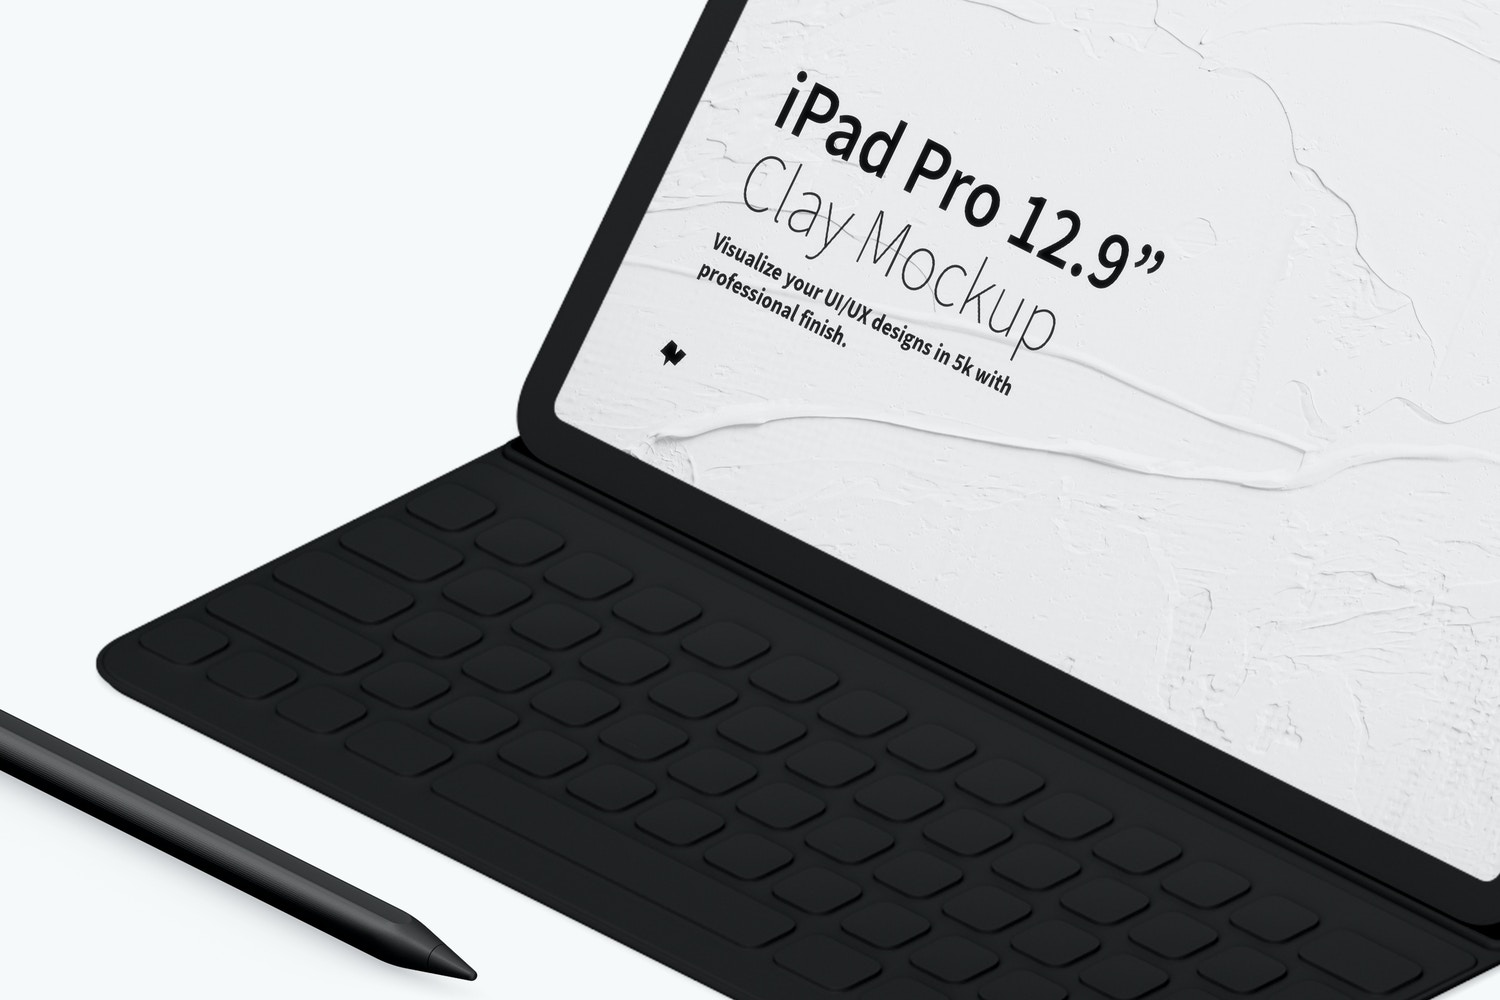 """Clay iPad Pro 12.9"""" Mockup, Isometric Right View With Keyboard"""